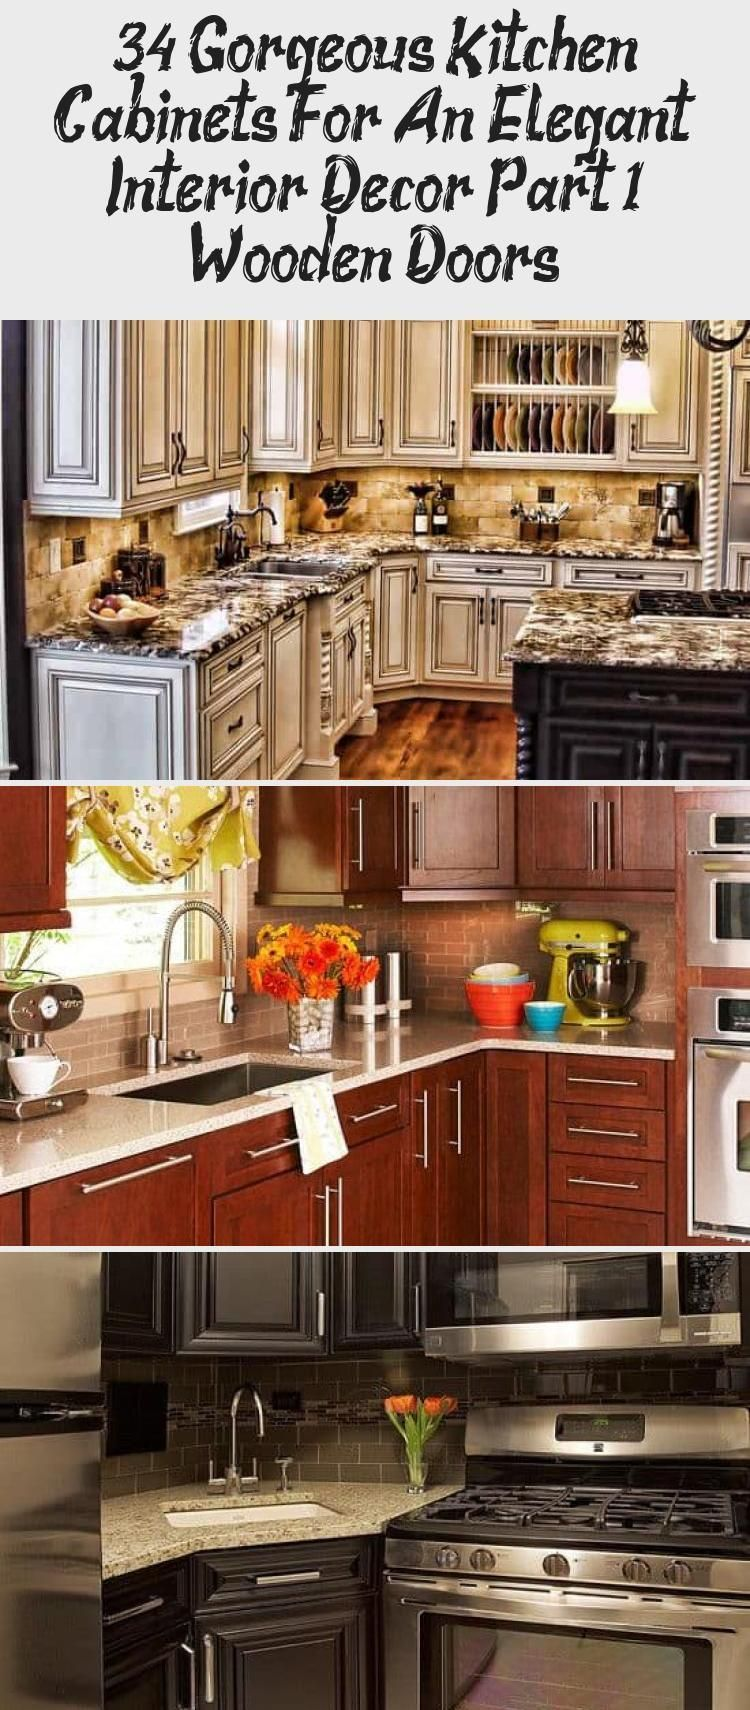 Photo of 34 Gorgeous kitchen cabinets for elegant interior decor Part 1- Wooden doors …